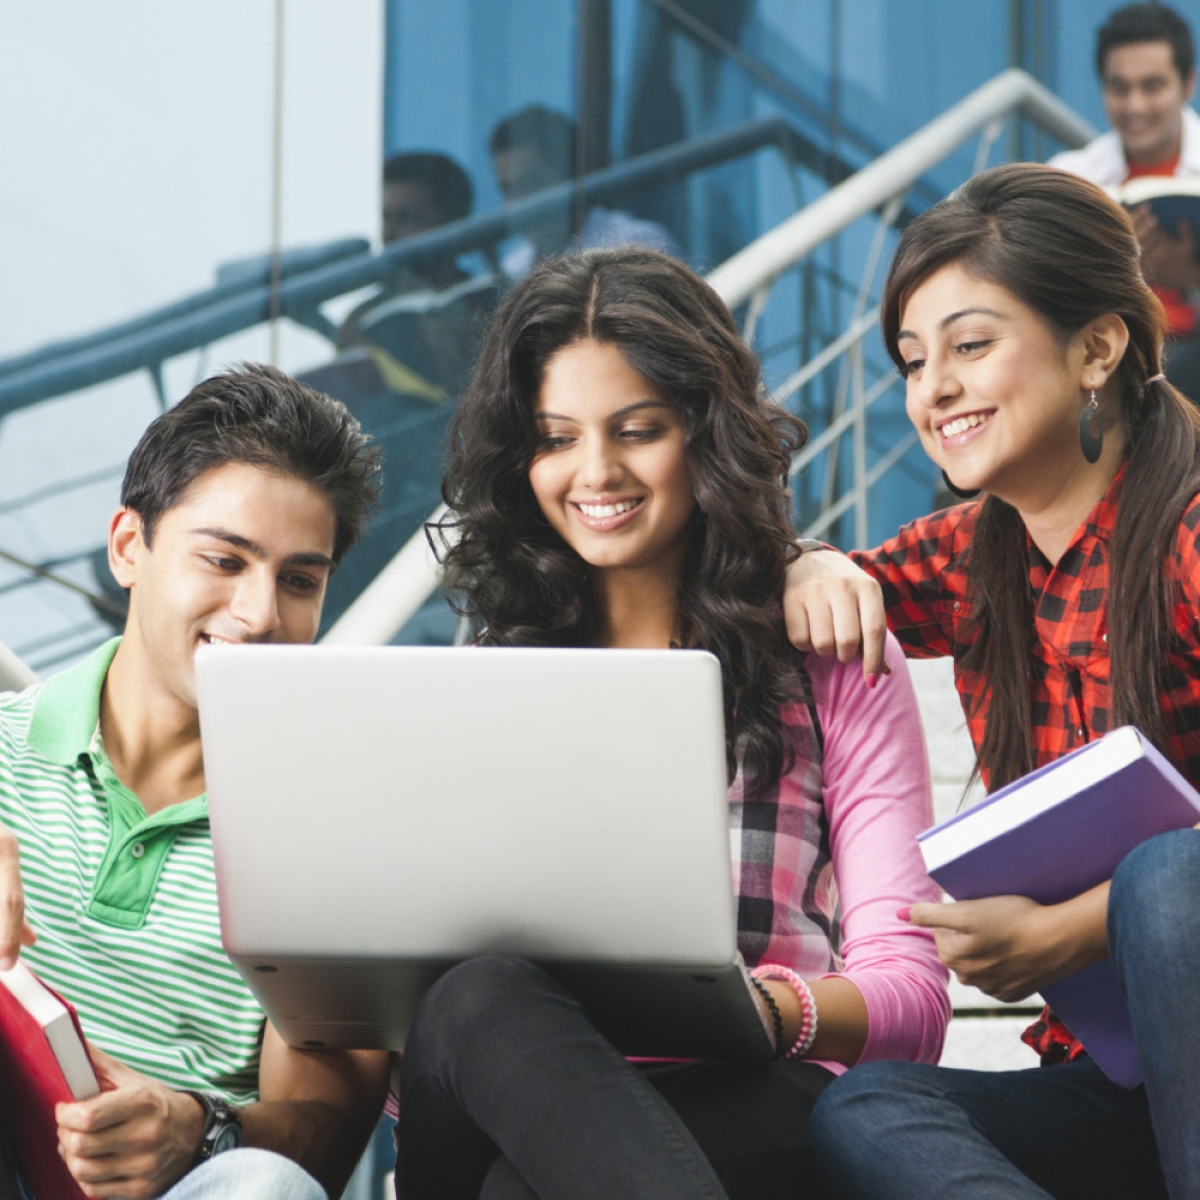 Madhya Pradesh: Admissions in technical institutes till September 15